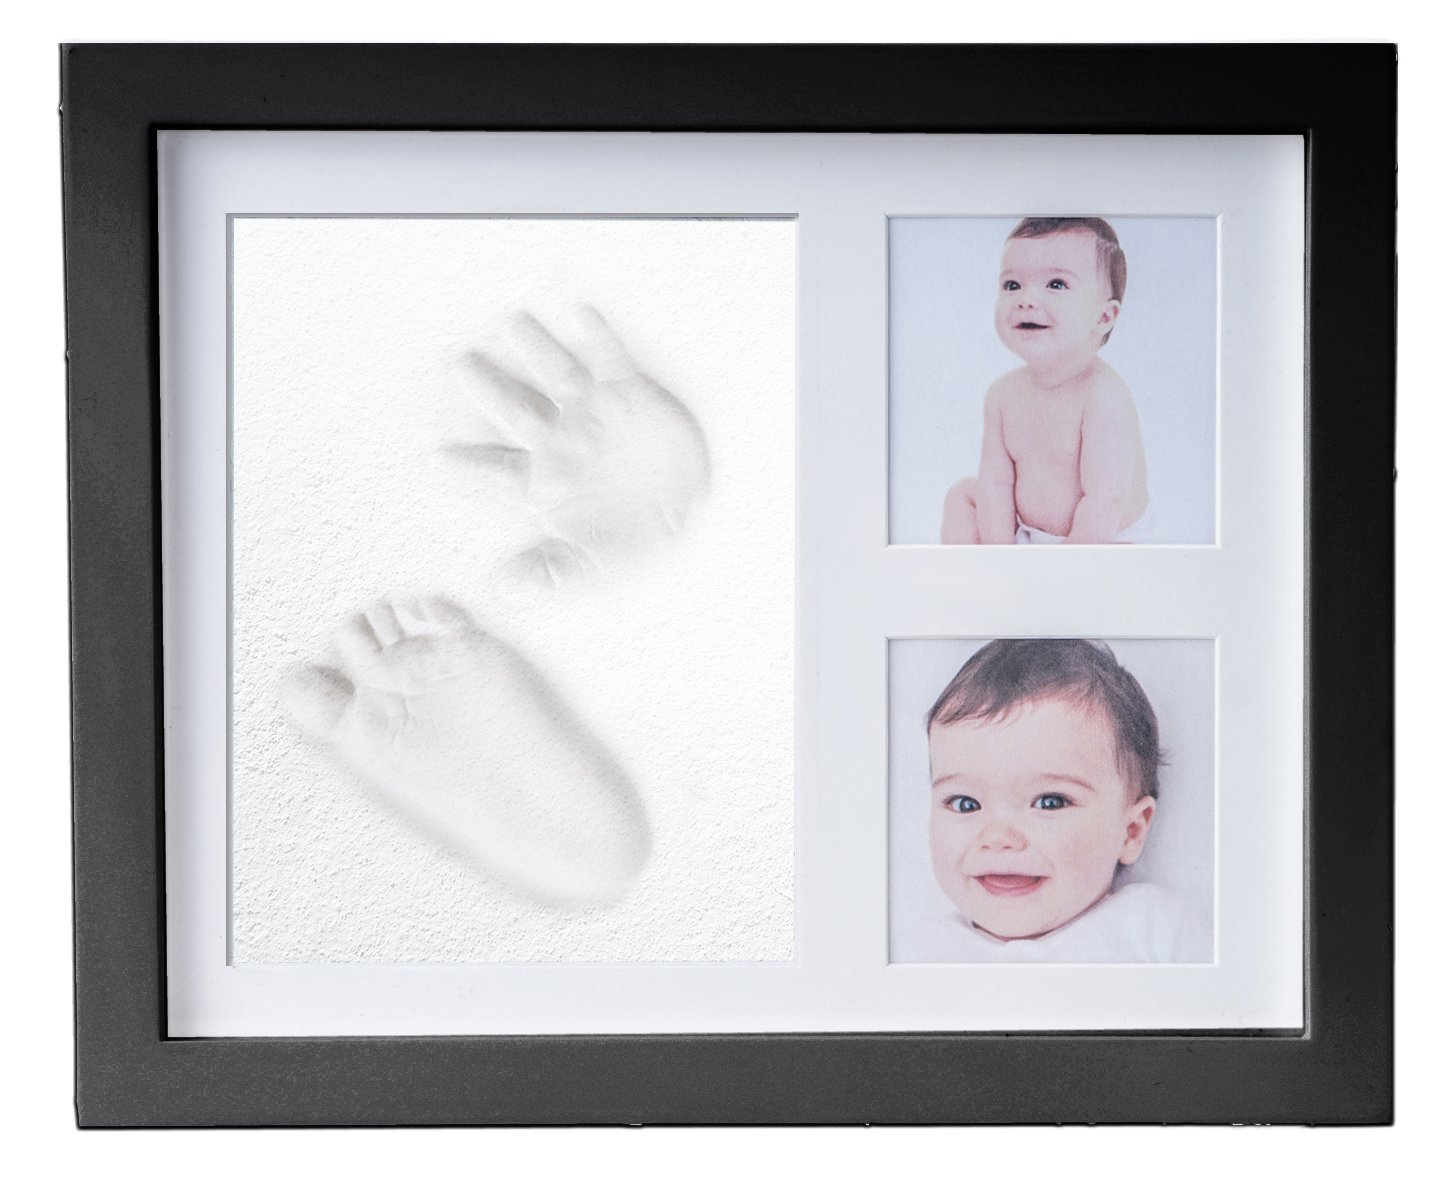 Baby Hand & Foot Print Frame Kit - include free rolling pin – Soft, Safe imprint Clay for moulding with a Premium Wood frame and High Quality Acrylic Glass Cover (ultimate newborn baby gift - Black frame) Chuckle